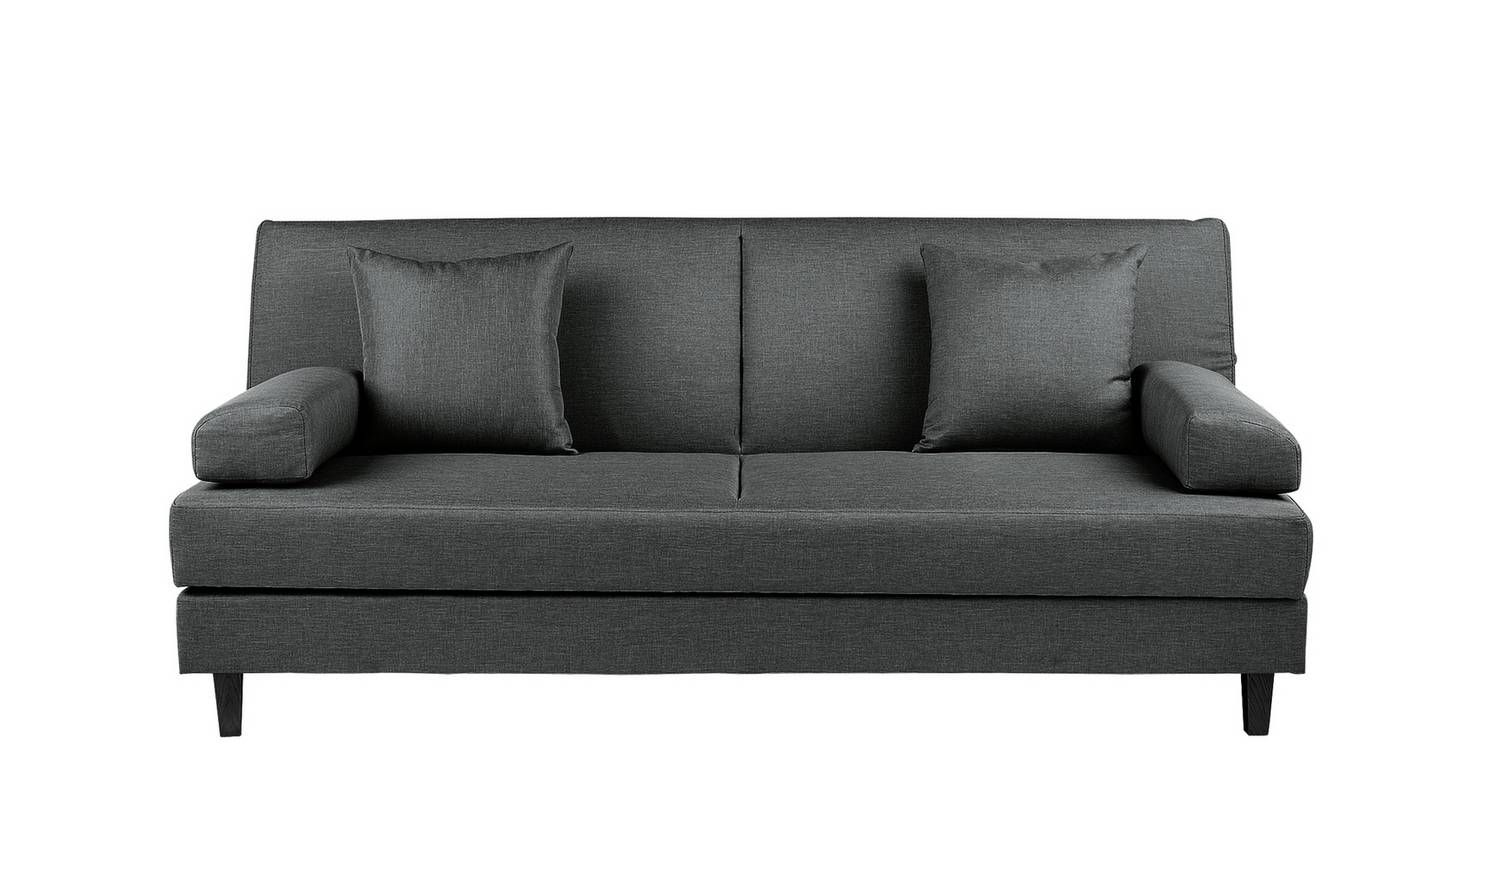 Buy Argos Home Chase Fabric Clic Clac Sofa Bed Light Grey Sofa Beds Grey Sofa Bed Charcoal Sofa Sofa Bed